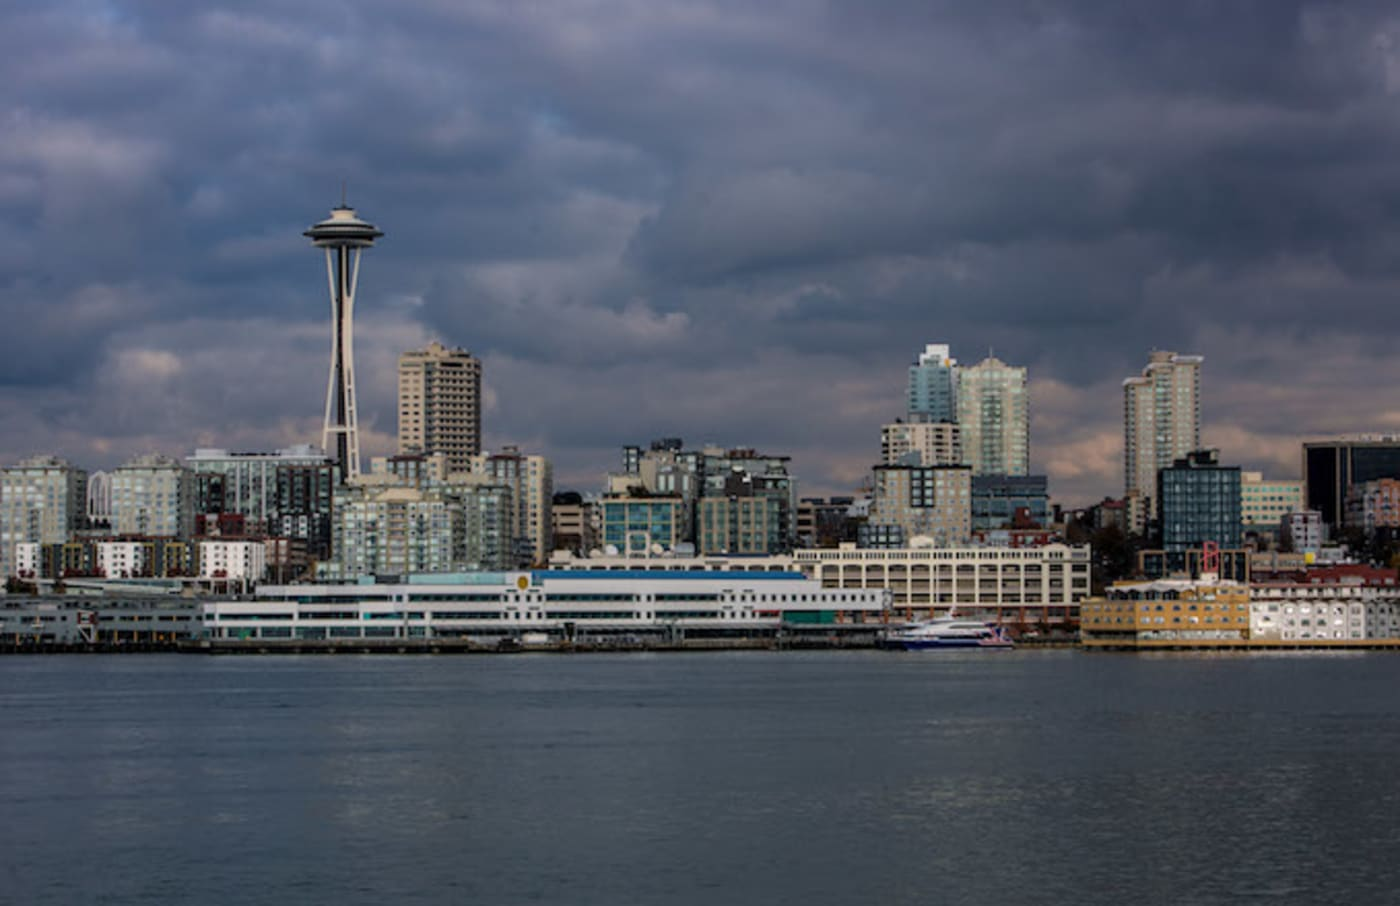 The waterfront, the Space Needle, and downtown skyline